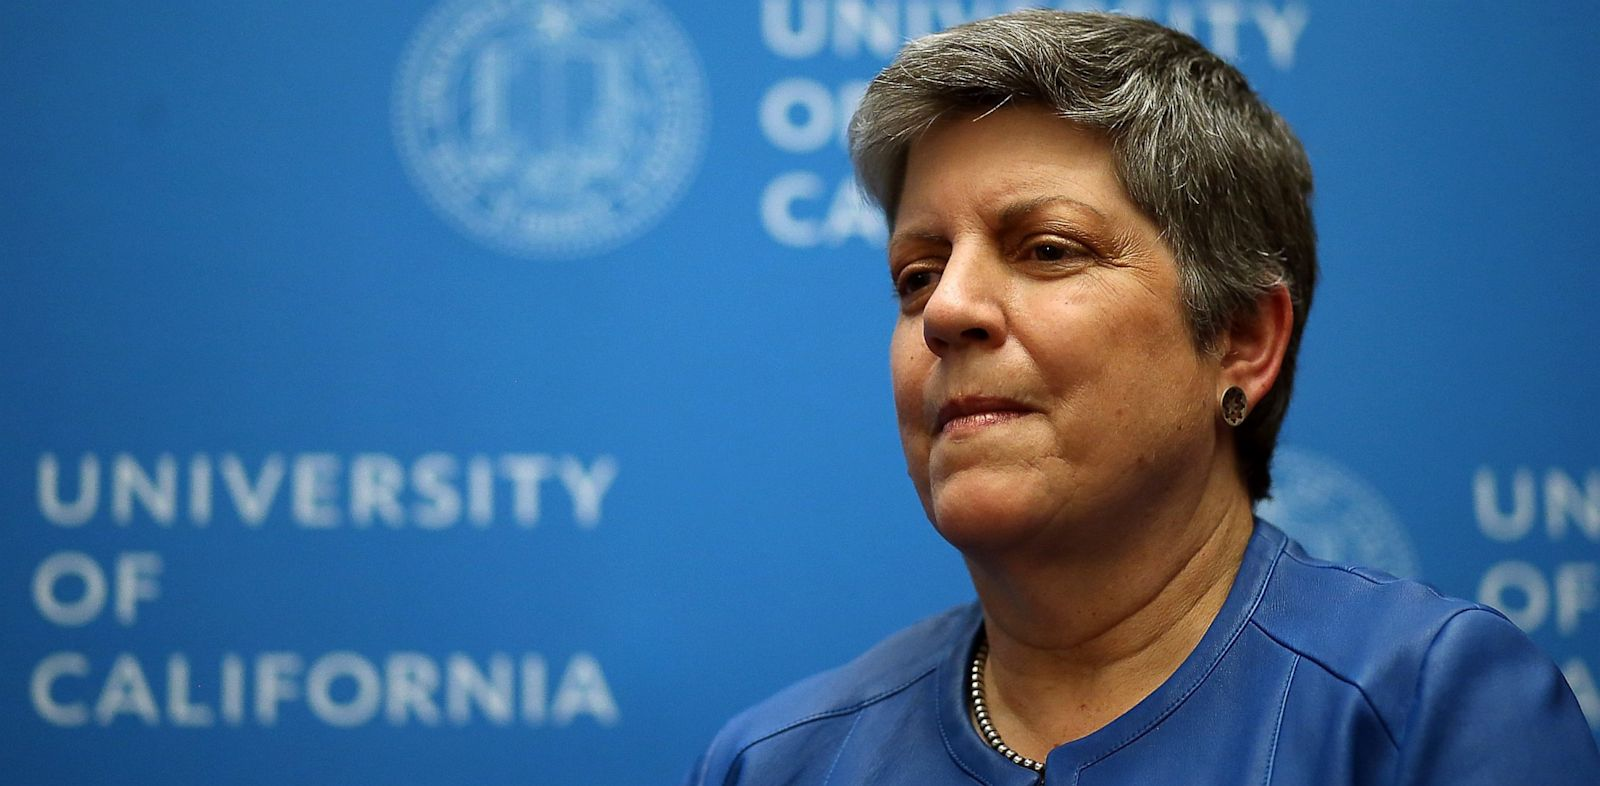 PHOTO: UC Students Launch Petition With Demands for Incoming President Janet Napolitano.